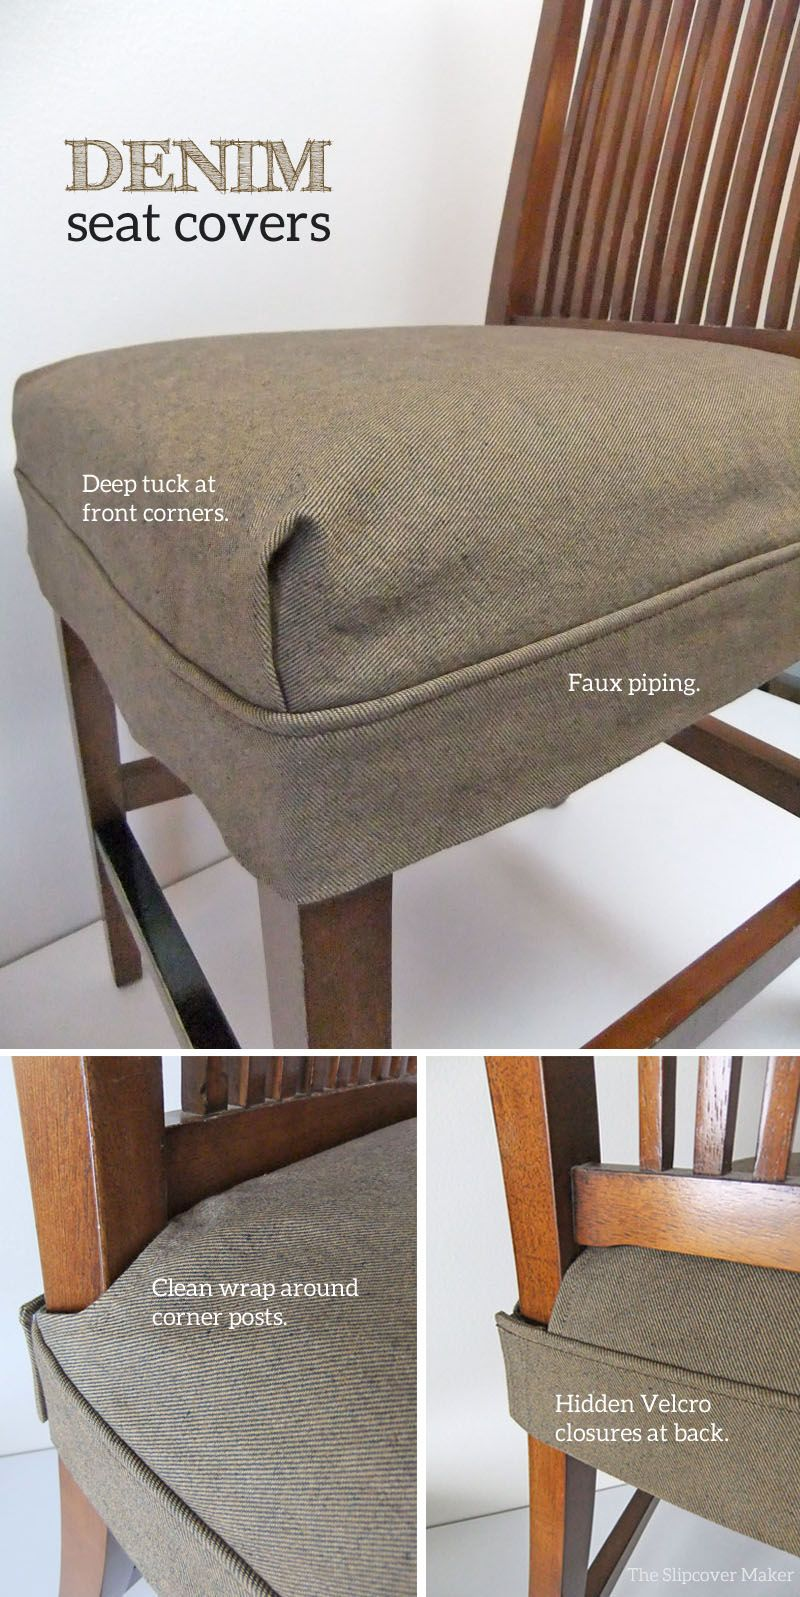 Washable seat covers for dining room chairs are a smart choice when upholstery becomes stained and worn out or splits and peels like pams leather like